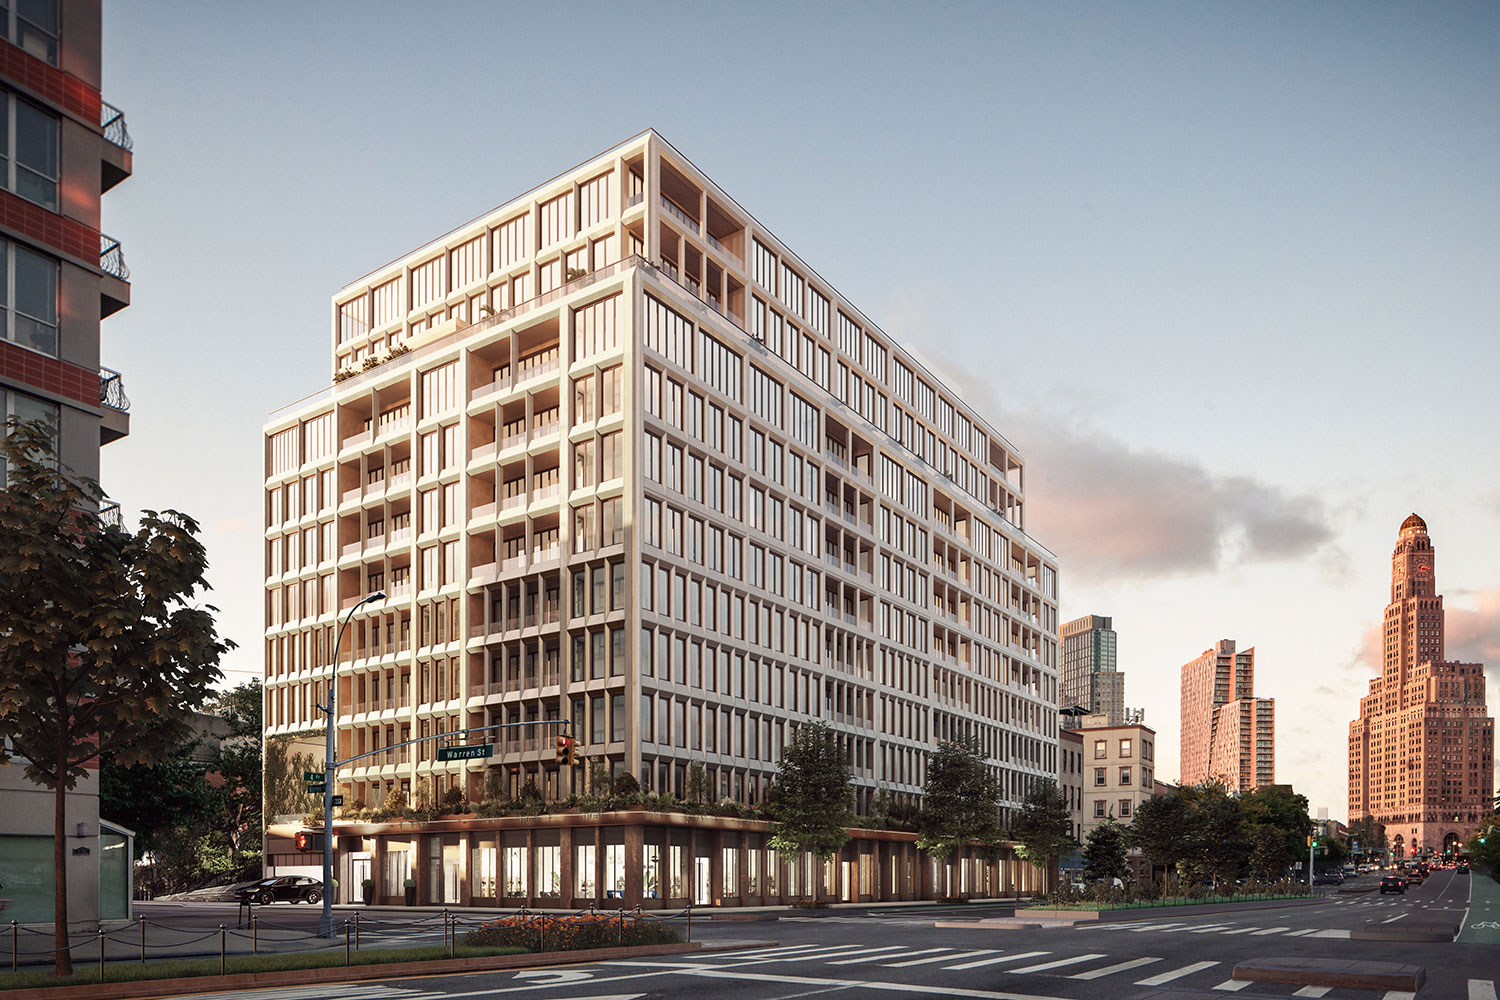 A rendering of the exterior facade of Saint Marks Place